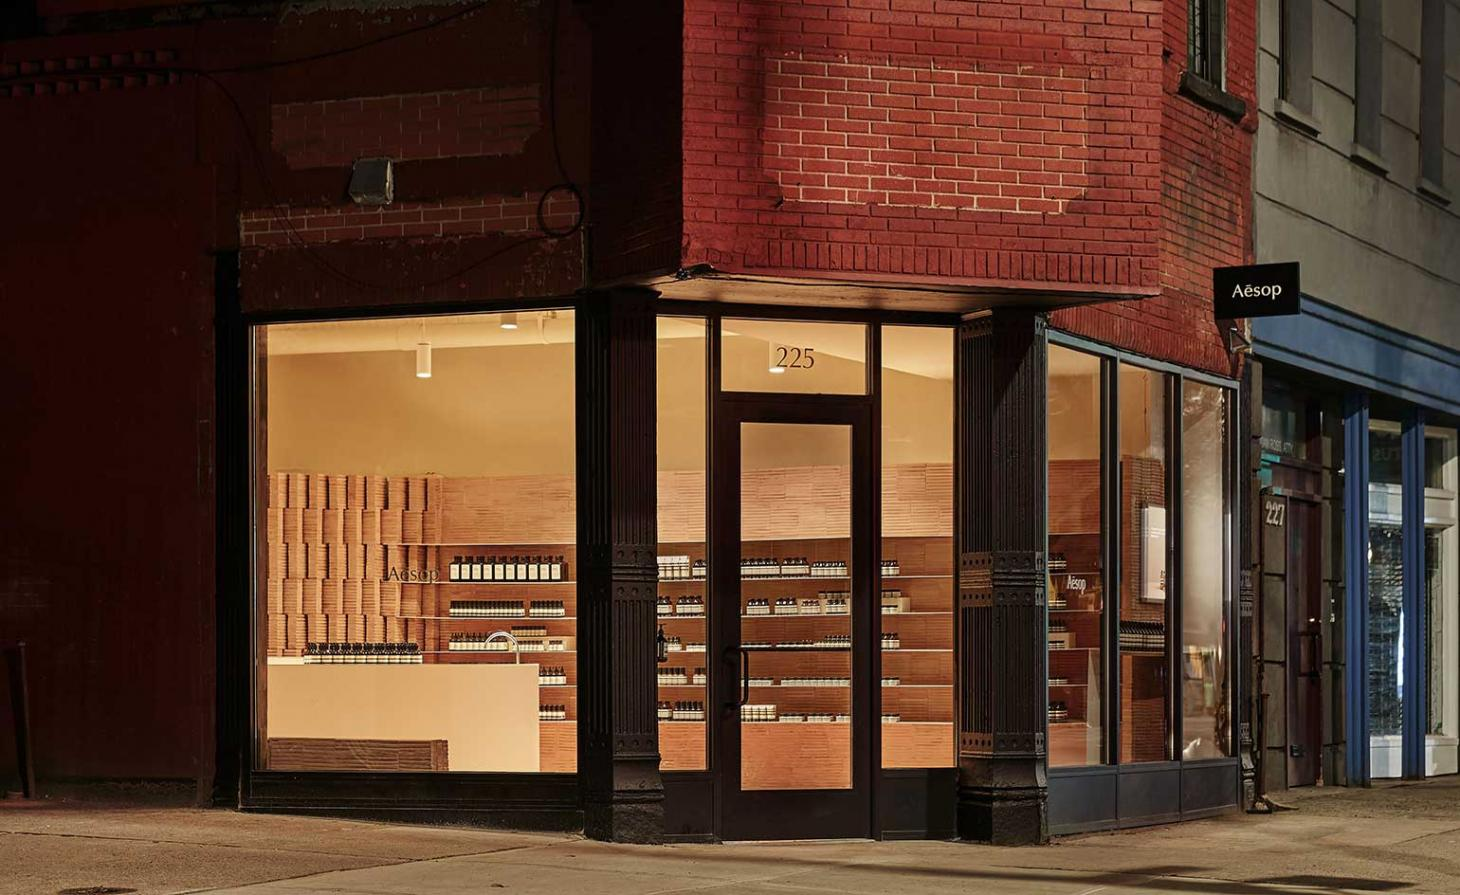 Aesop boutique, Park Slope, Brooklyn, New York.